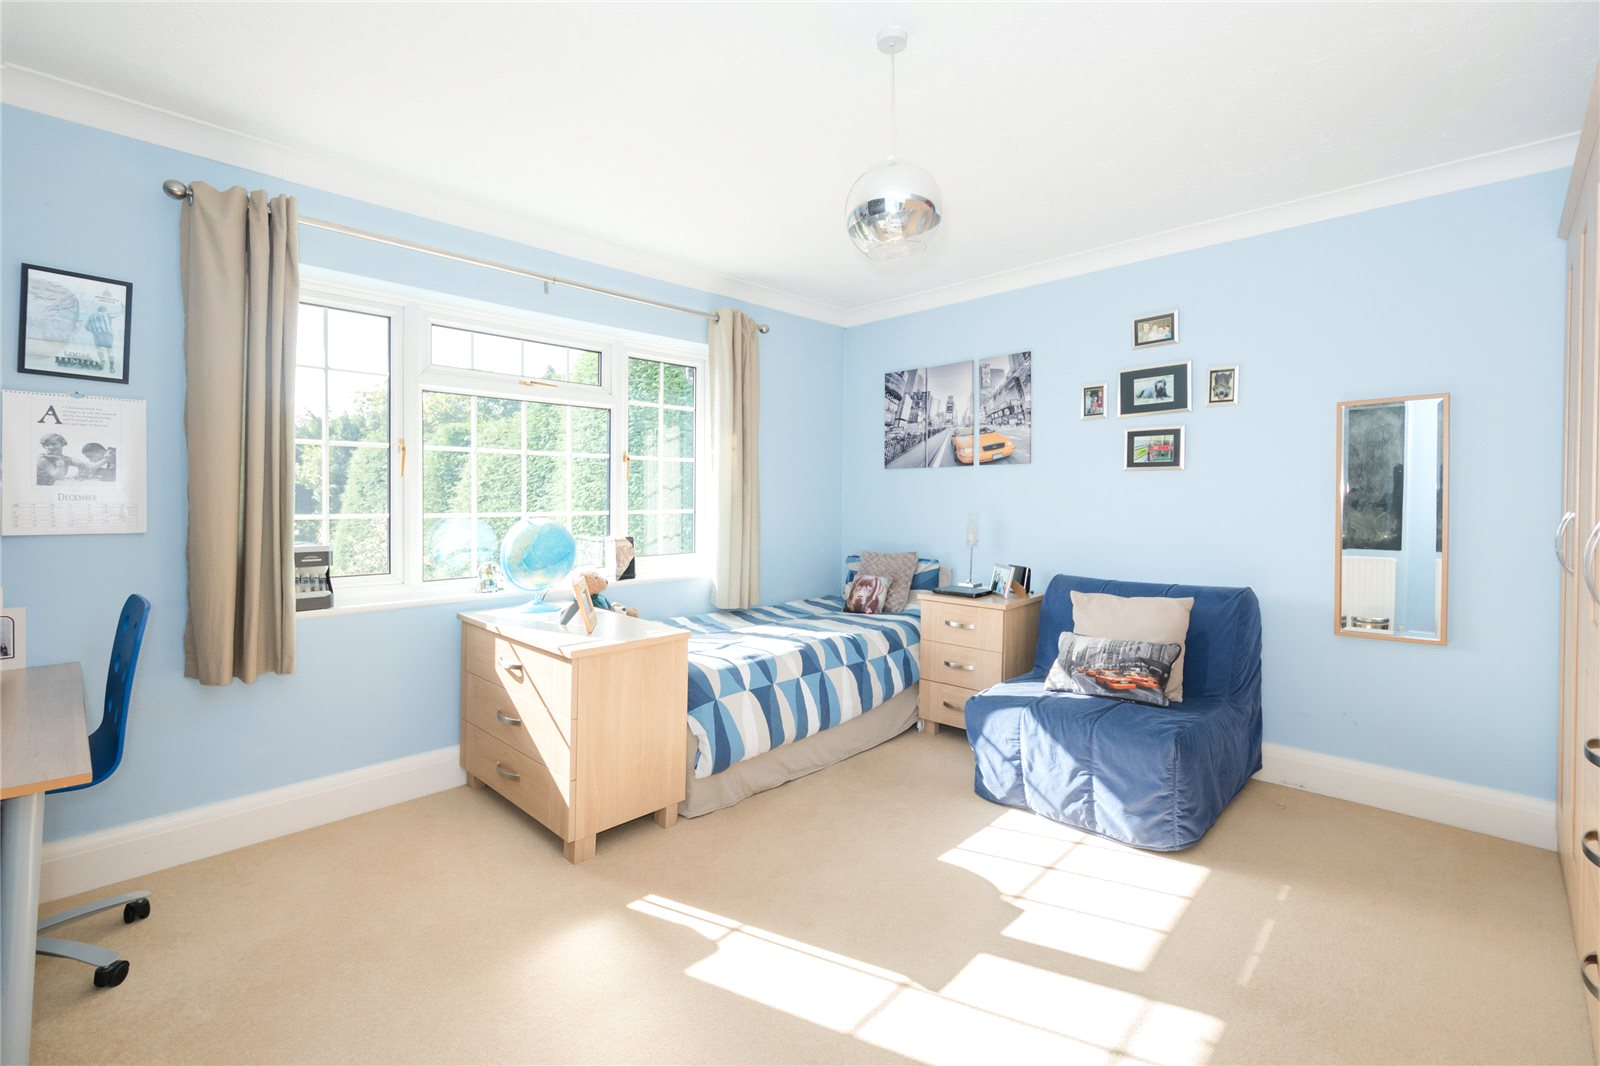 Additional photo for property listing at Priory Road, Chalfont St Peter, Buckinghamshire, SL9 Chalfont St Peter, Αγγλια